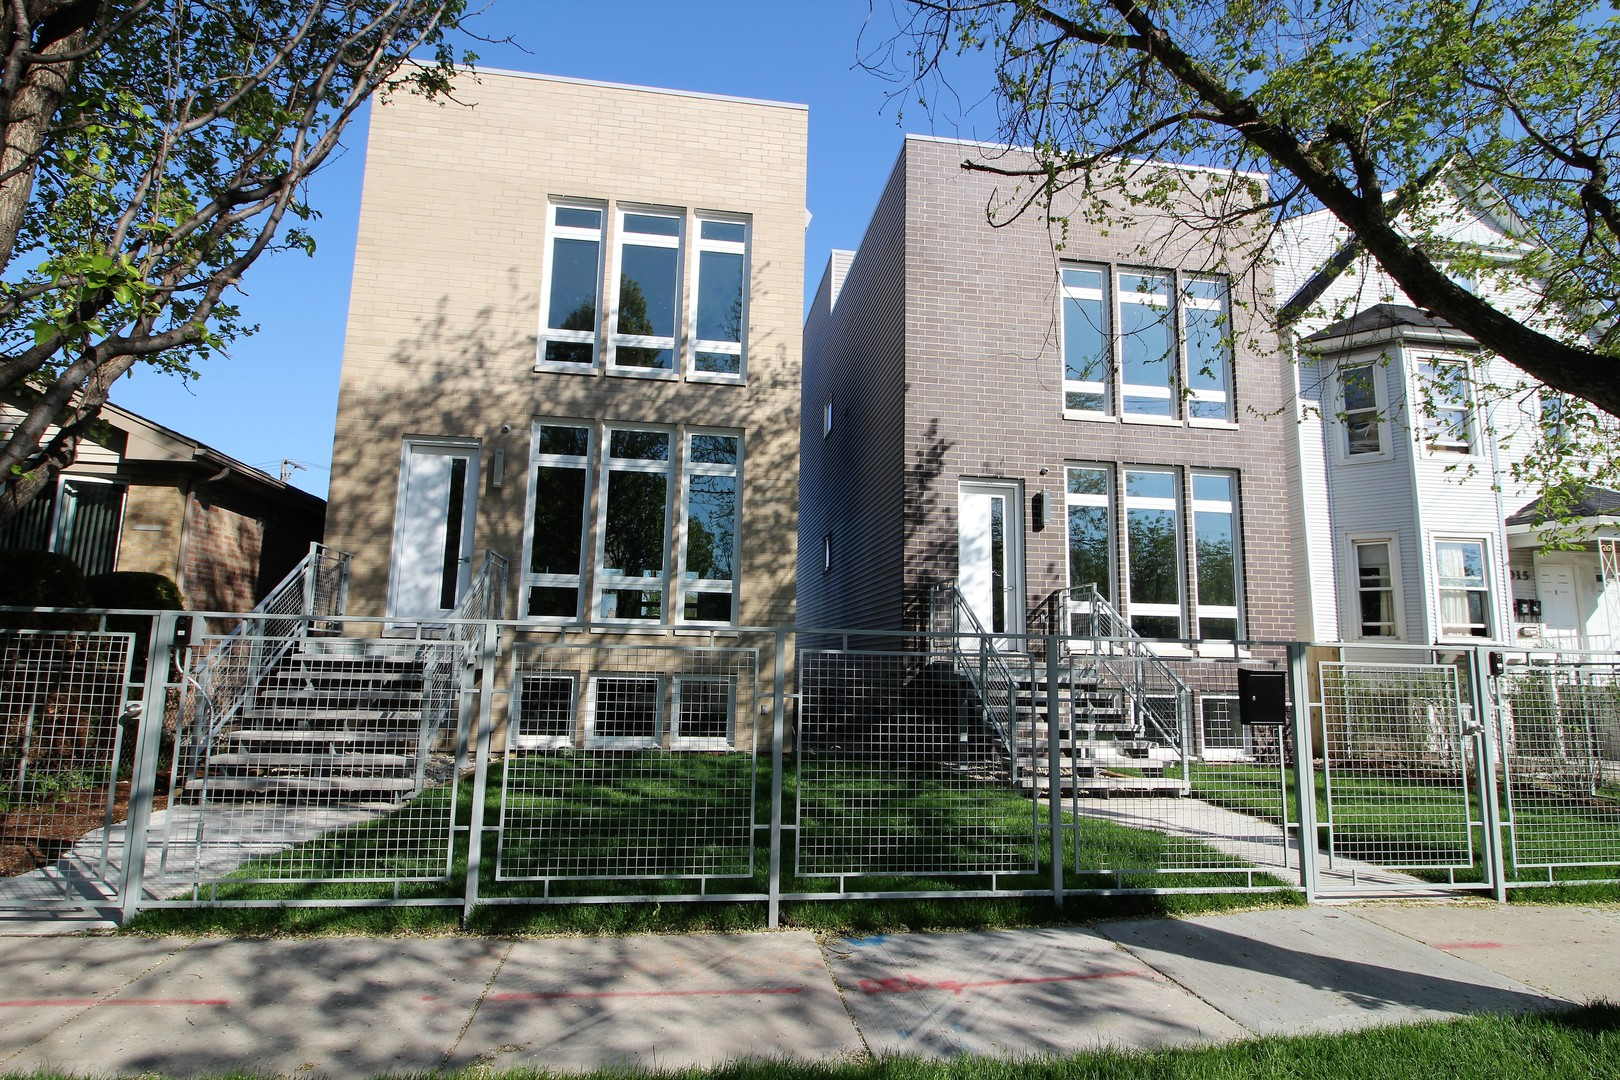 5019 NORTH KIMBERLY AVENUE, CHICAGO, IL 60630